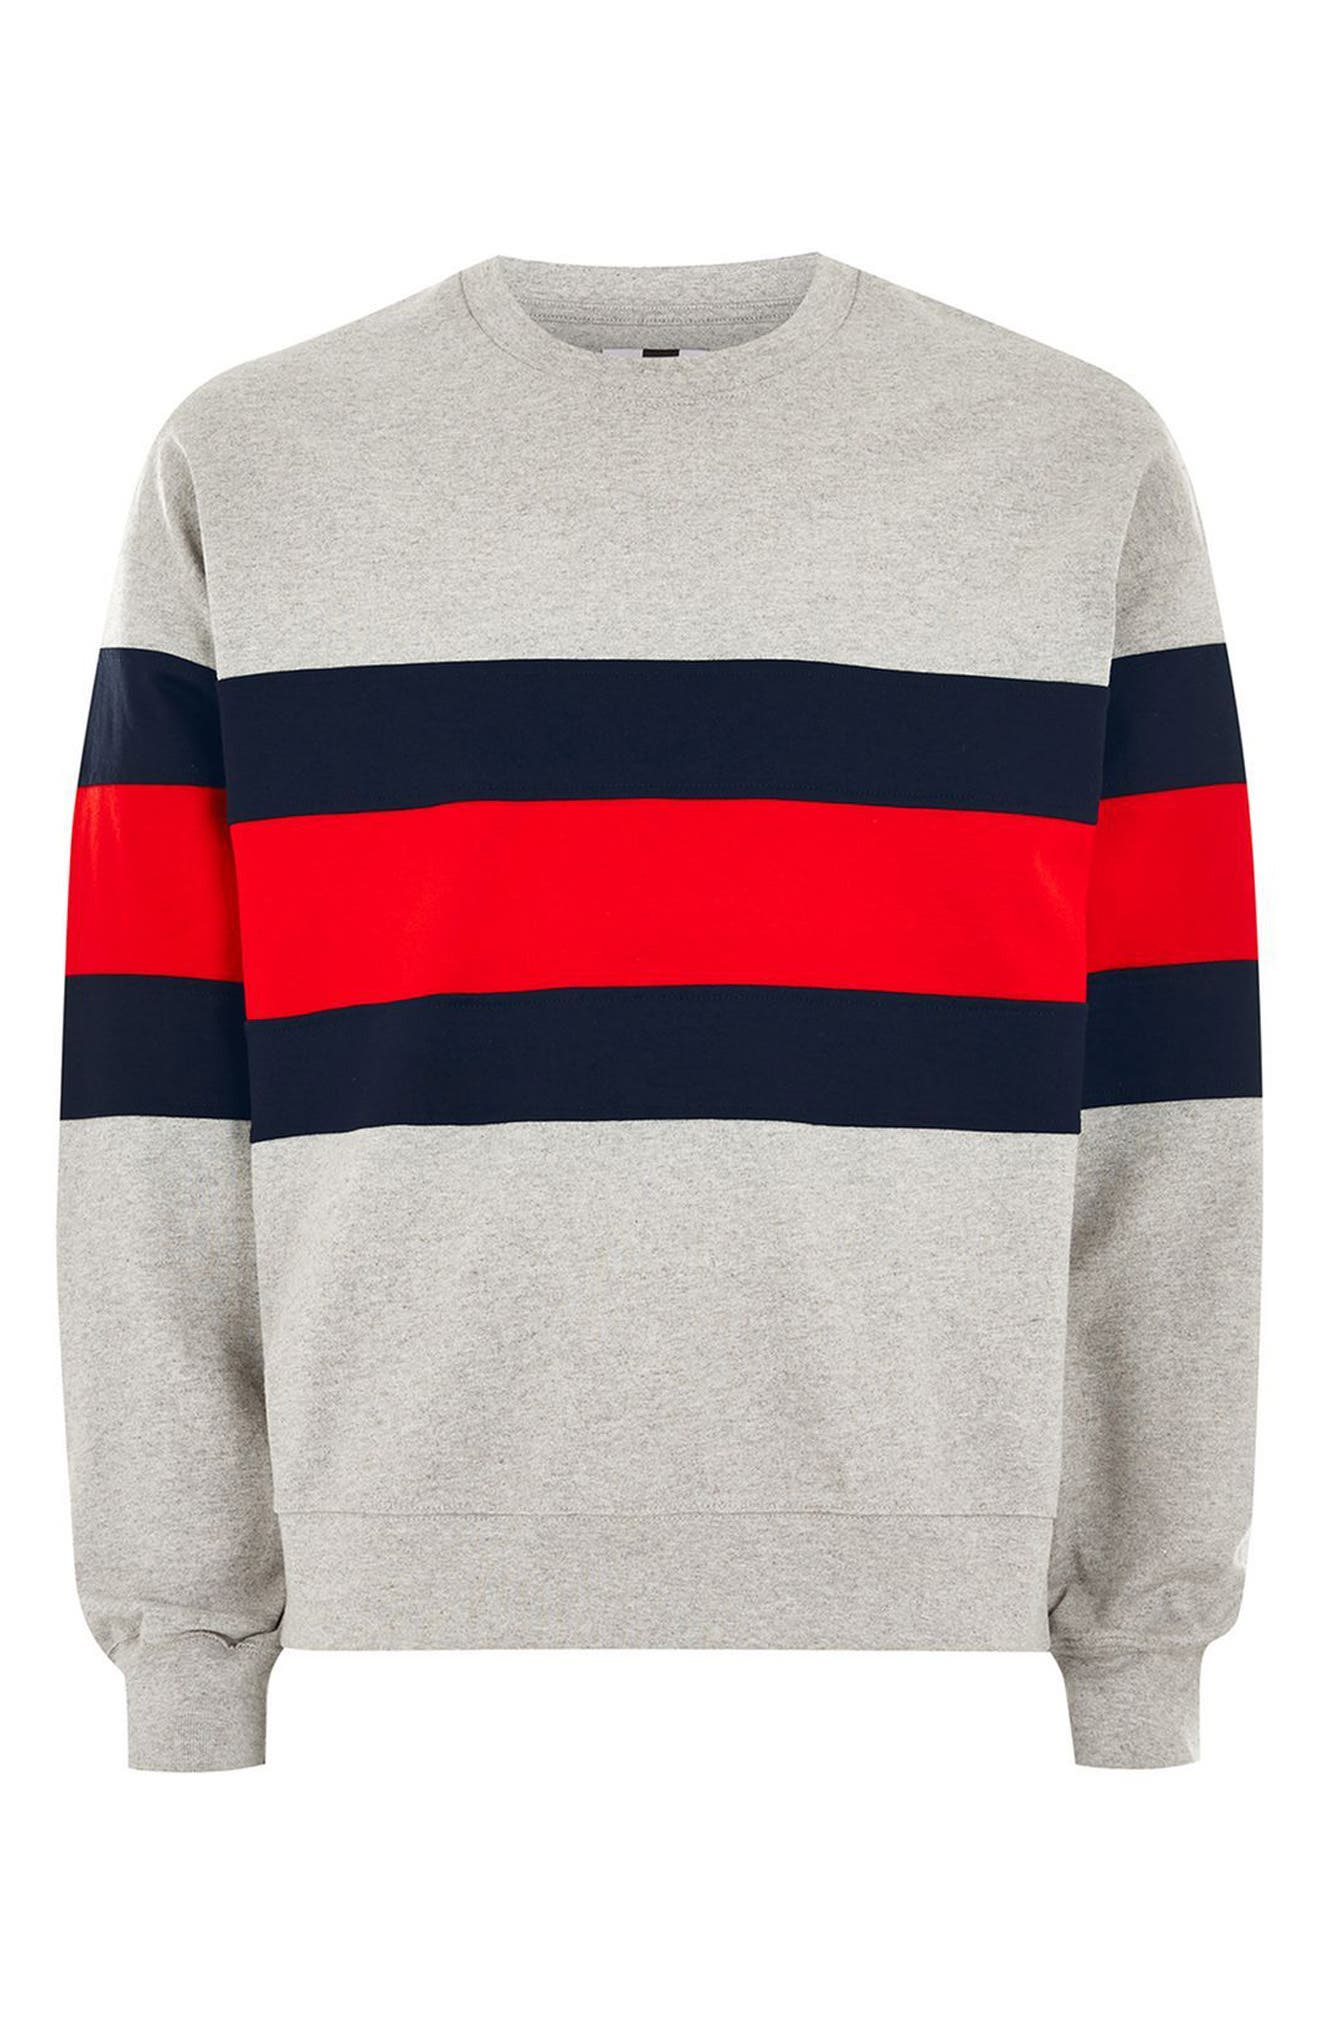 Classic Fit Striped Sweatshirt,                             Alternate thumbnail 4, color,                             LIGHT GREY MULTI